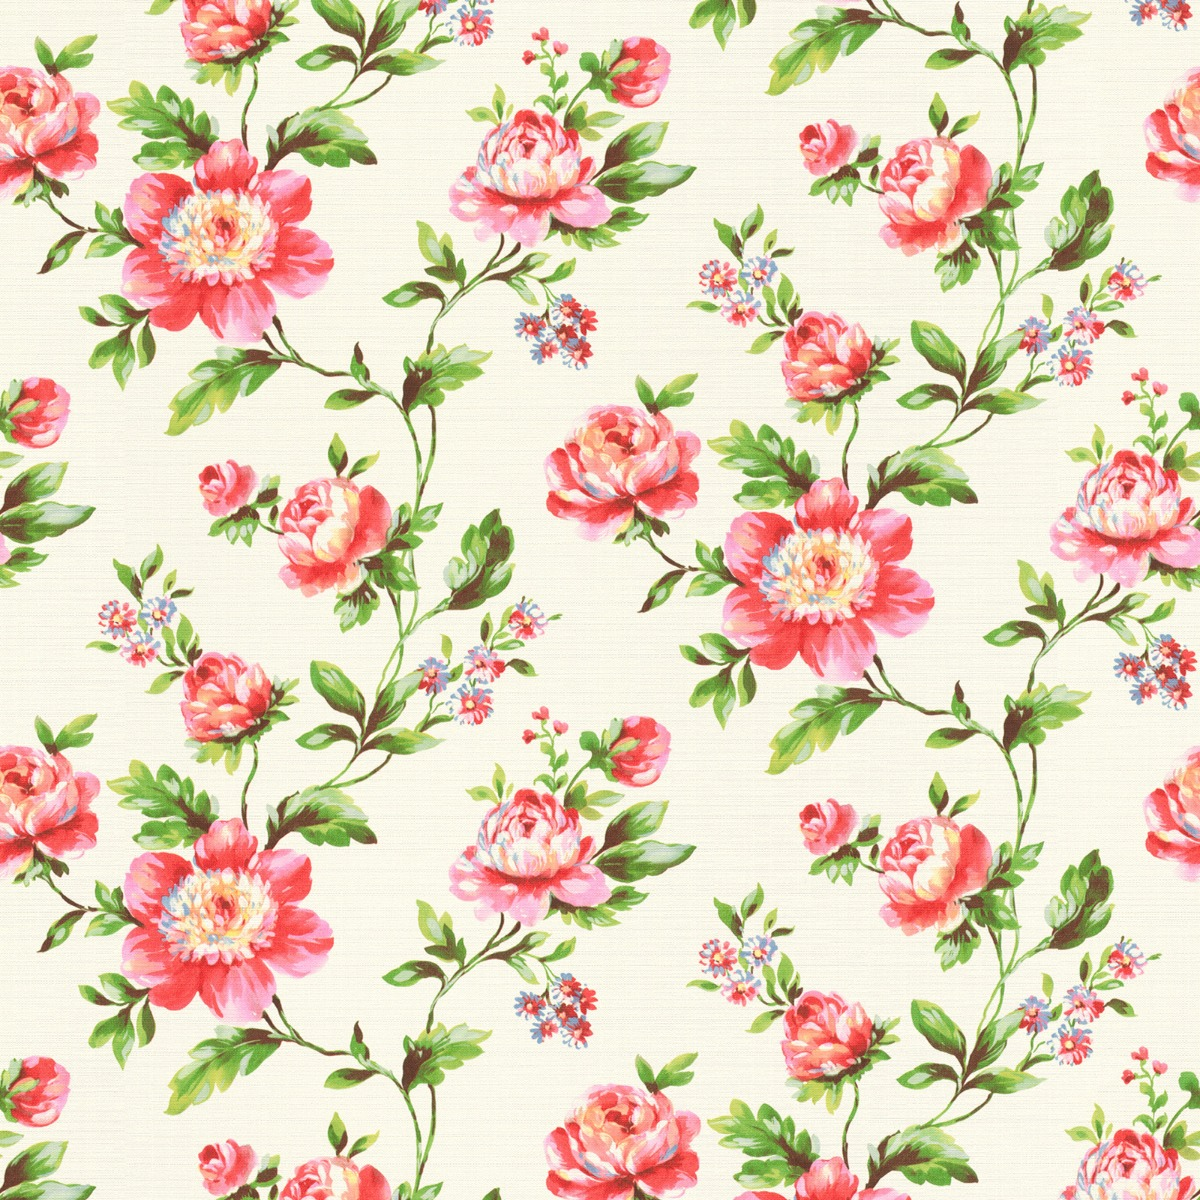 Vintage Chic Floral Butterfly Wallpaper Flowers Pink Red Blue Paste The Wall